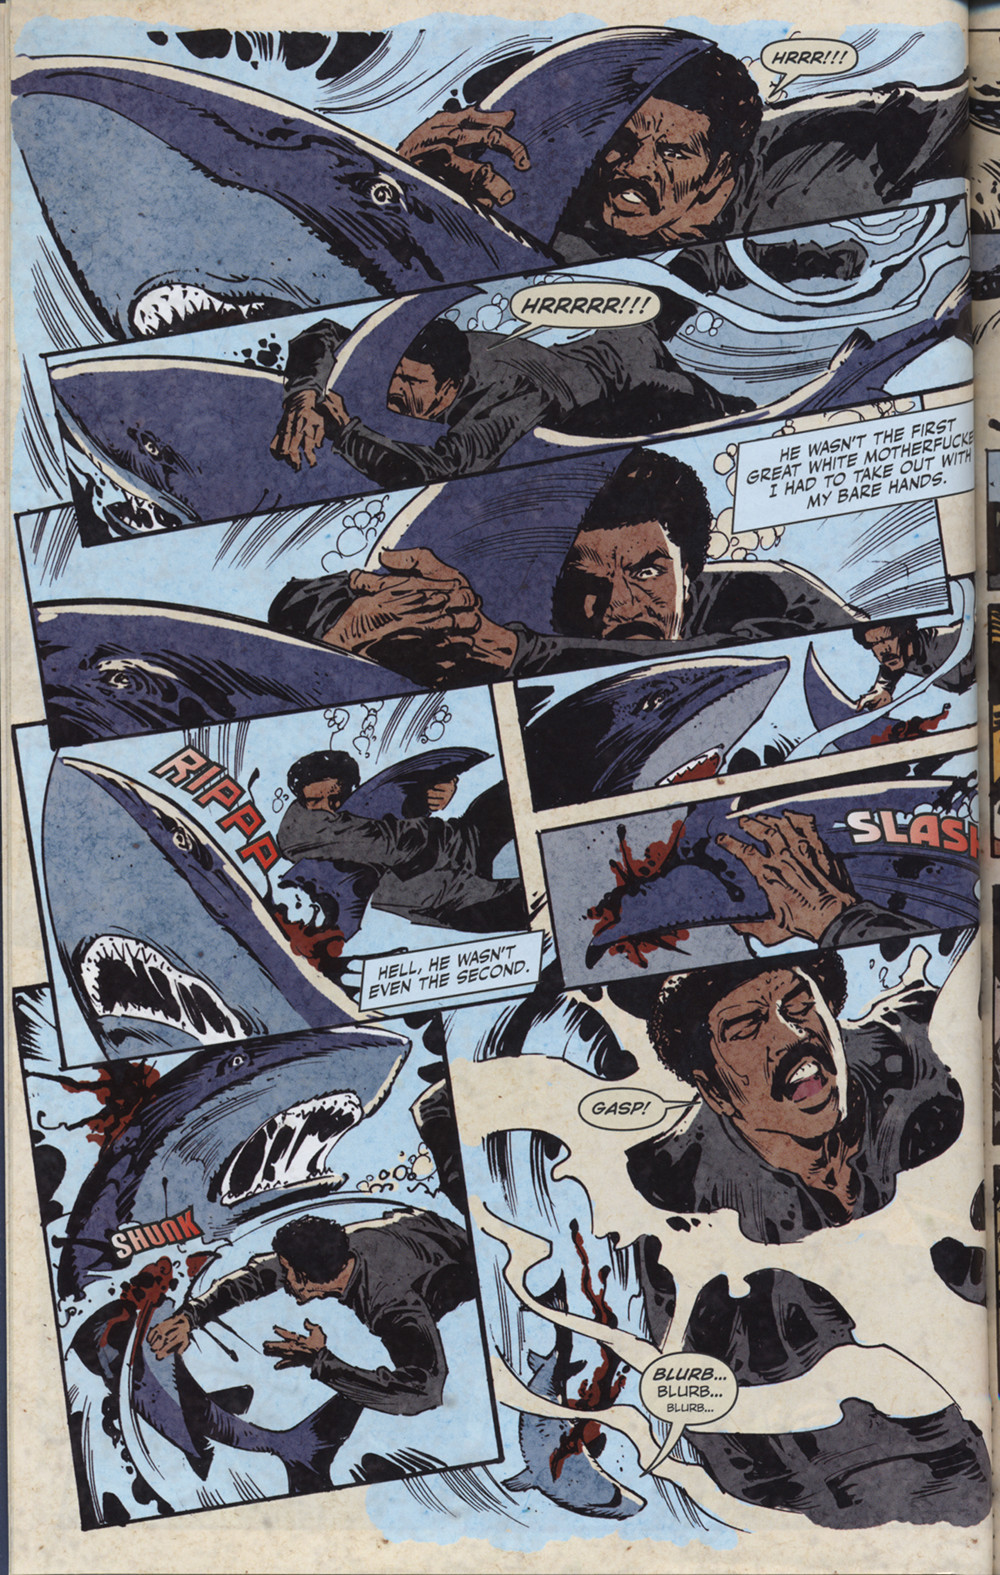 Happy Black History Month! Black Dynamite fights a shark in Black Dynamite: Escape from Slave Island (Ars Nova and Ape Entertainment, 2011), written by Brian Ash, art by Jun Lofamia and colors by J.M. Ringuet.